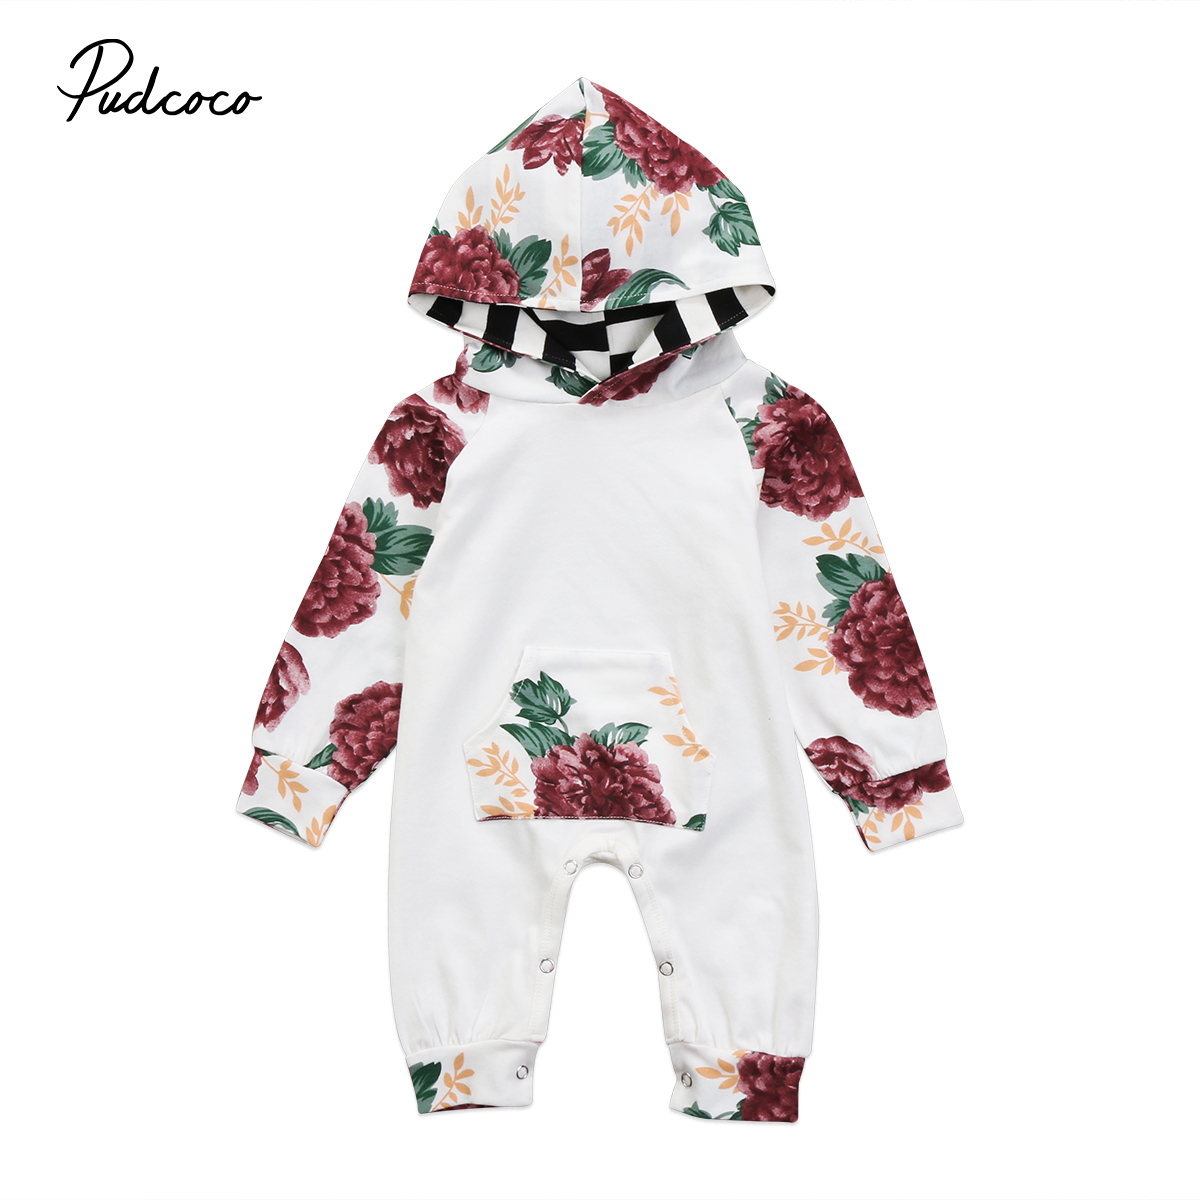 Flower Baby Colthing Newborn Baby Girl Floral Long sleeve Clothes Hooded Hoodies Romper Jumpsuit Baby Home Outfits 0-2T